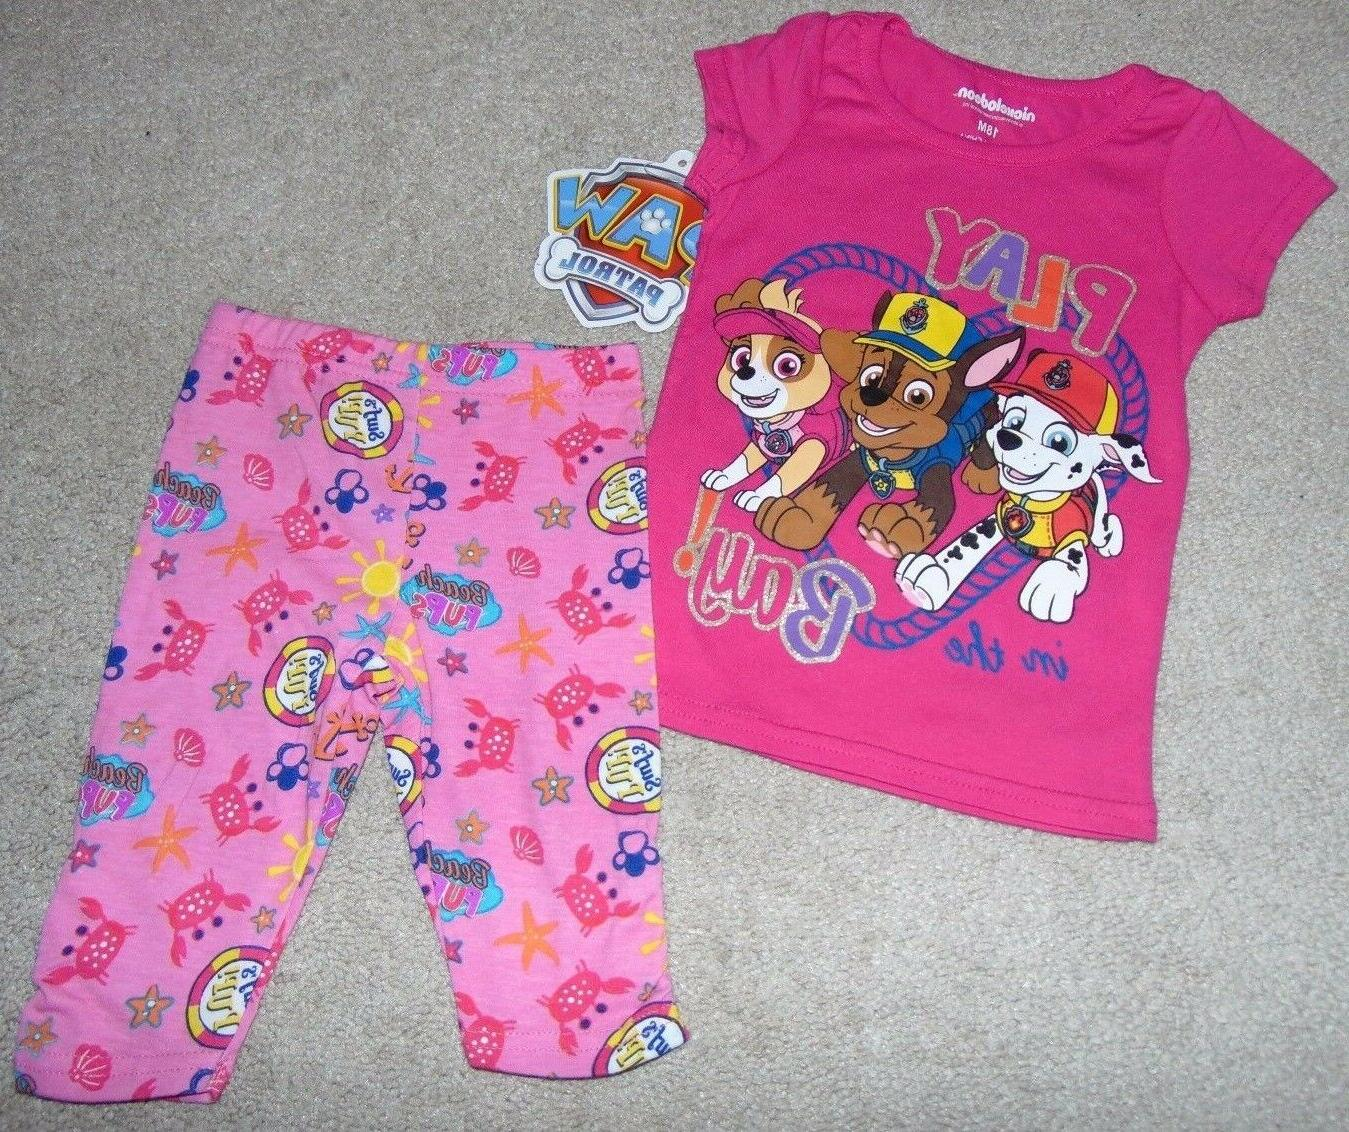 nwt girls paw patrol outfit size 12